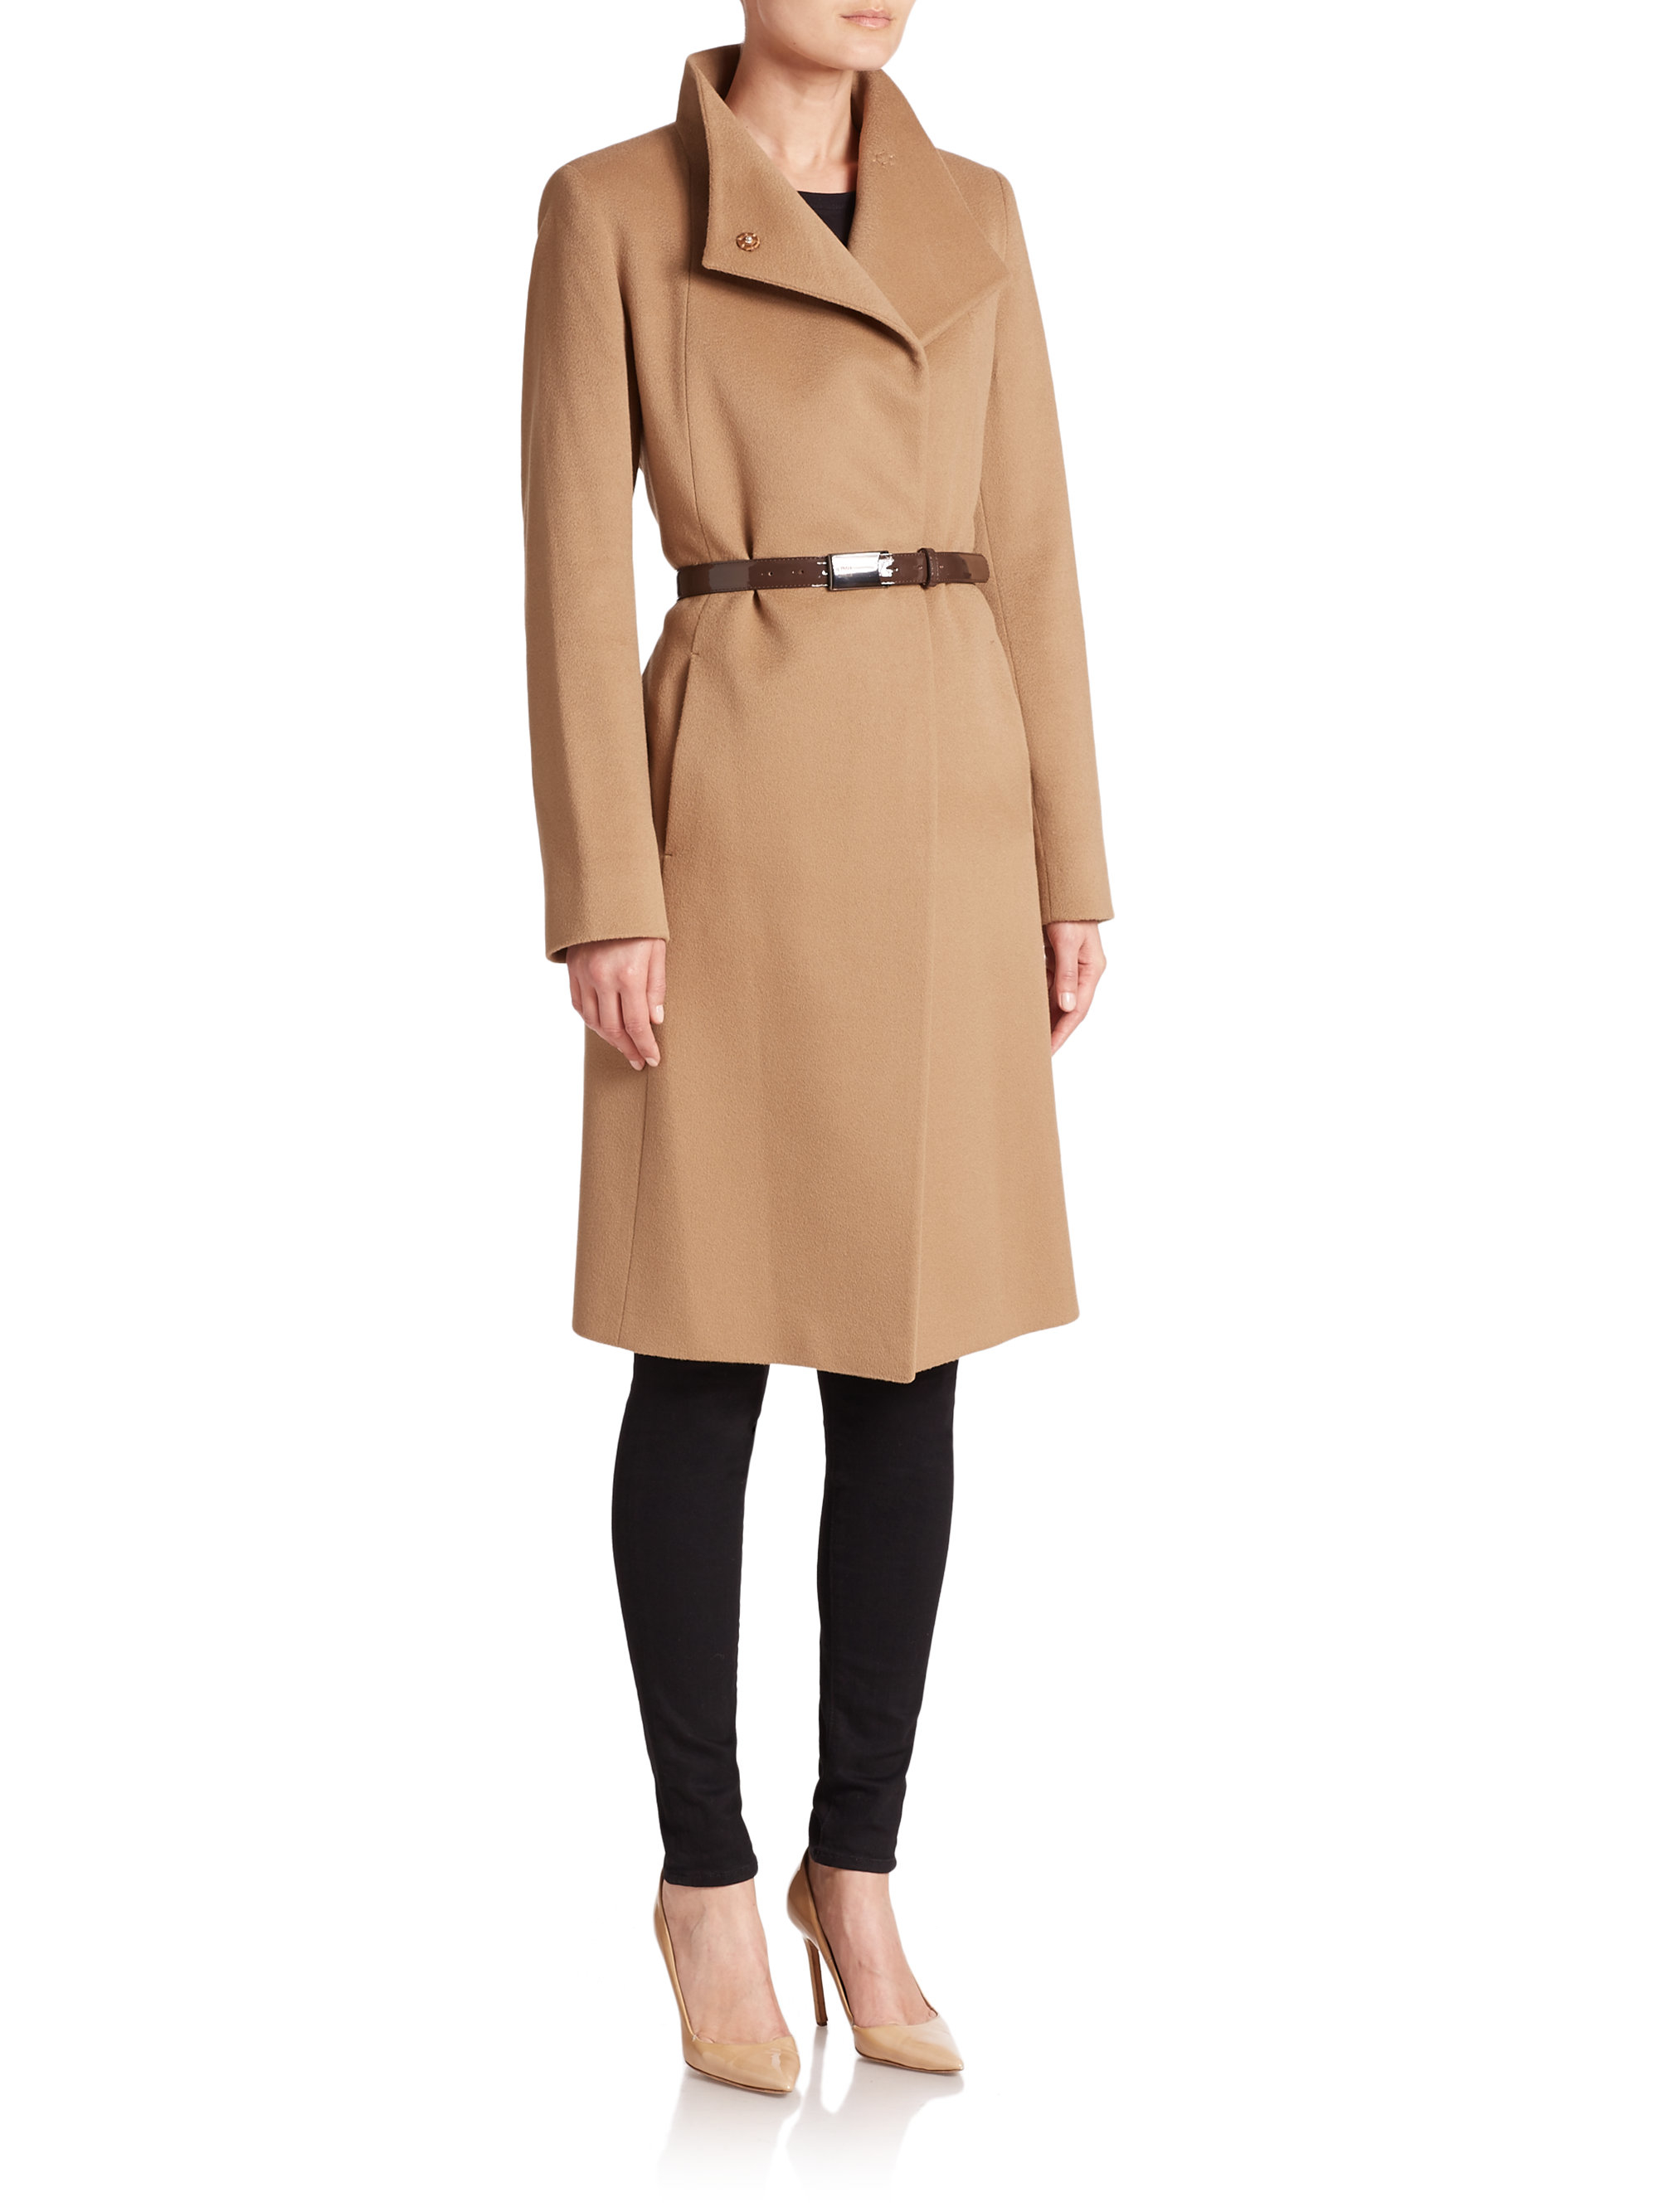 Cinzia rocca Belted Cashmere Coat in Natural | Lyst